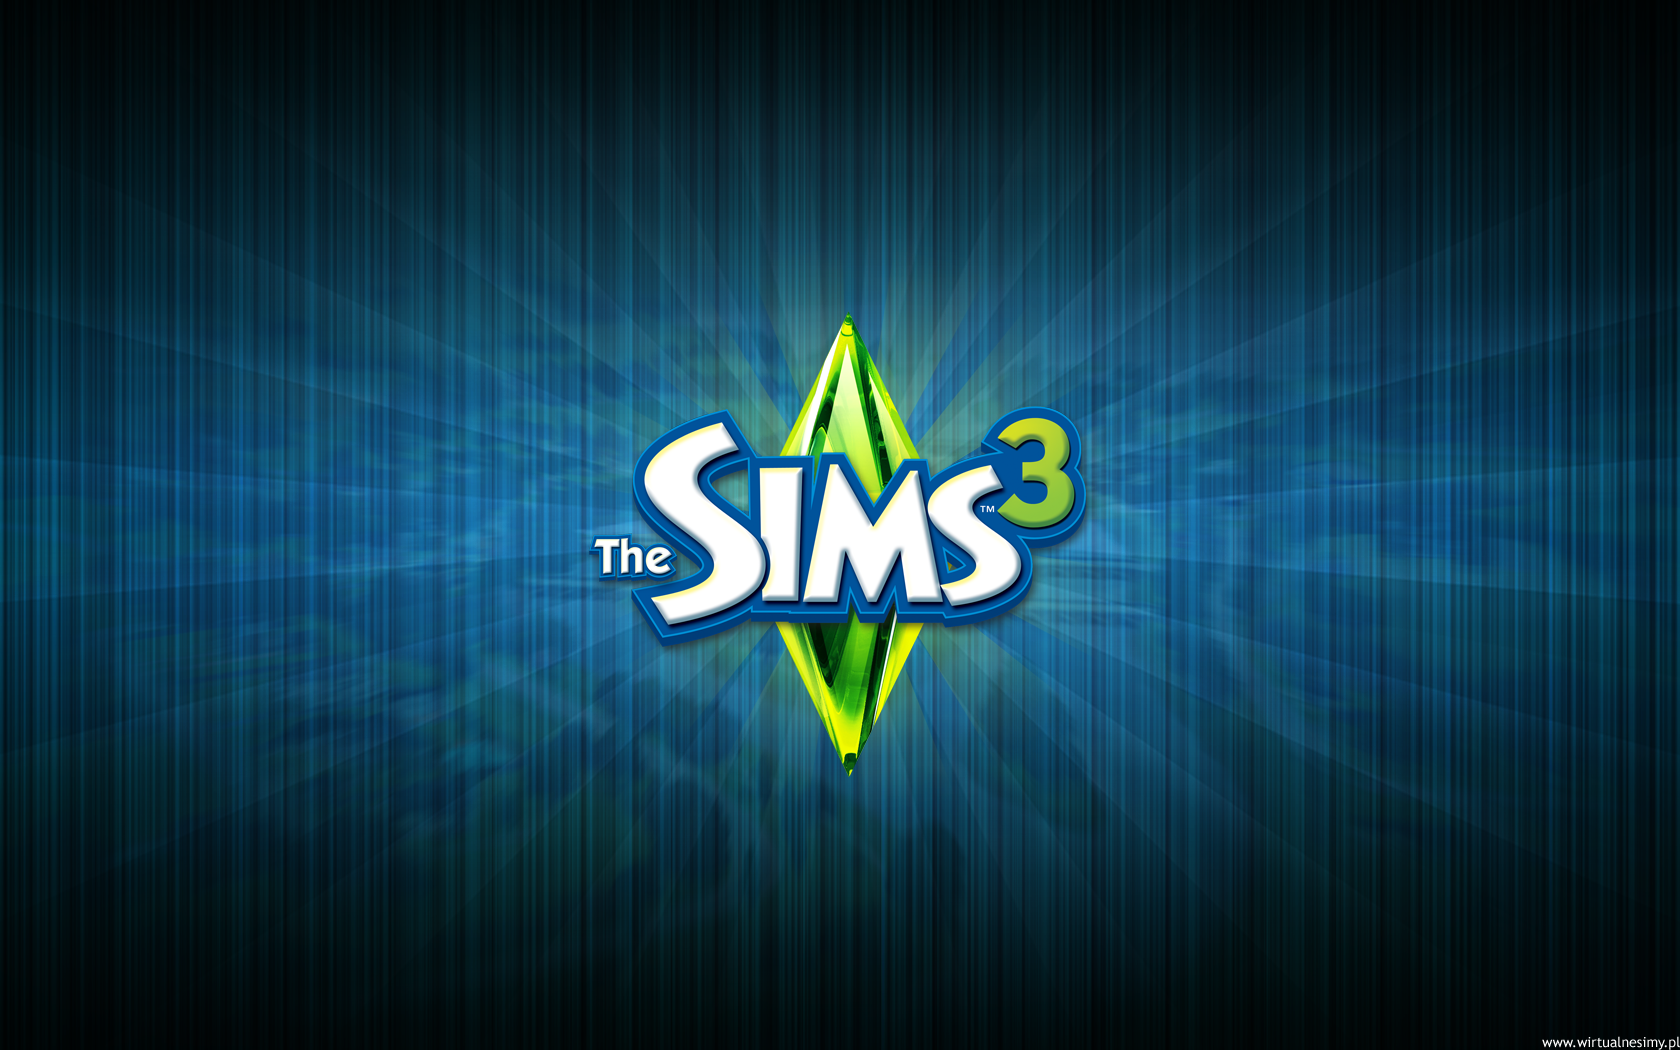 Tapety   The Sims 3 Wallpaper 19625560 1680x1050